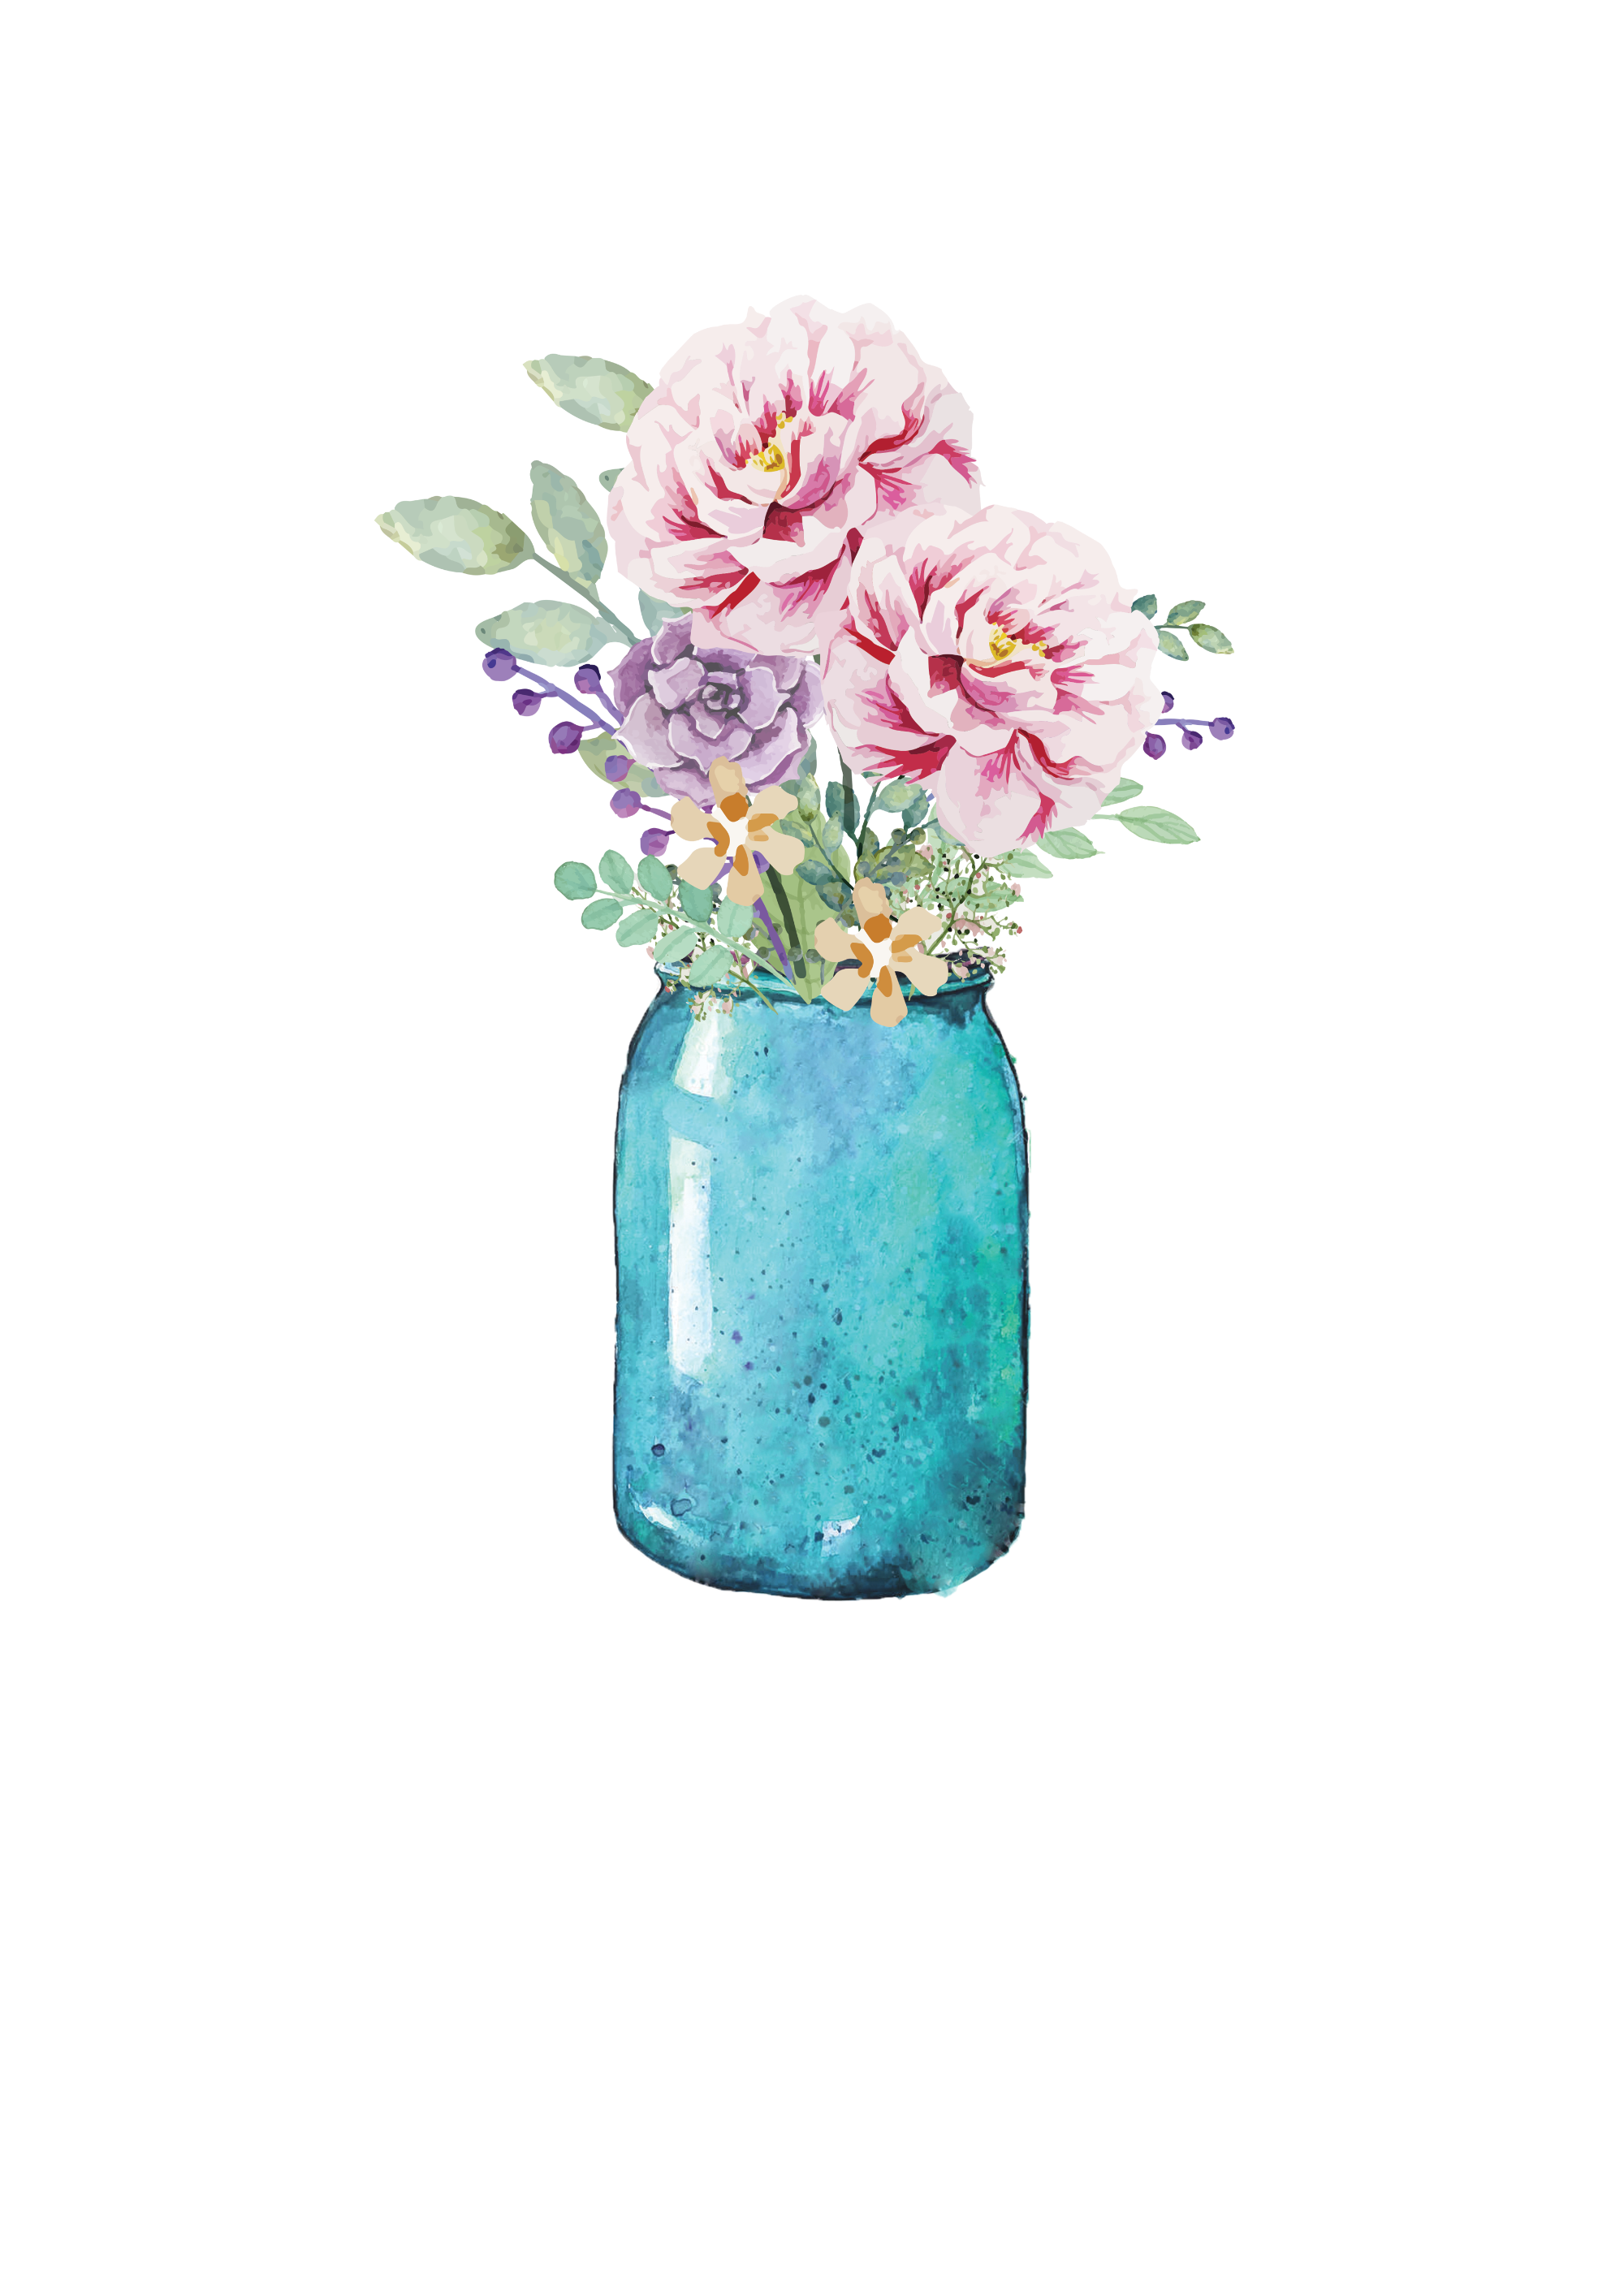 Lauren baxter flowers in. Perfume clipart canning jar